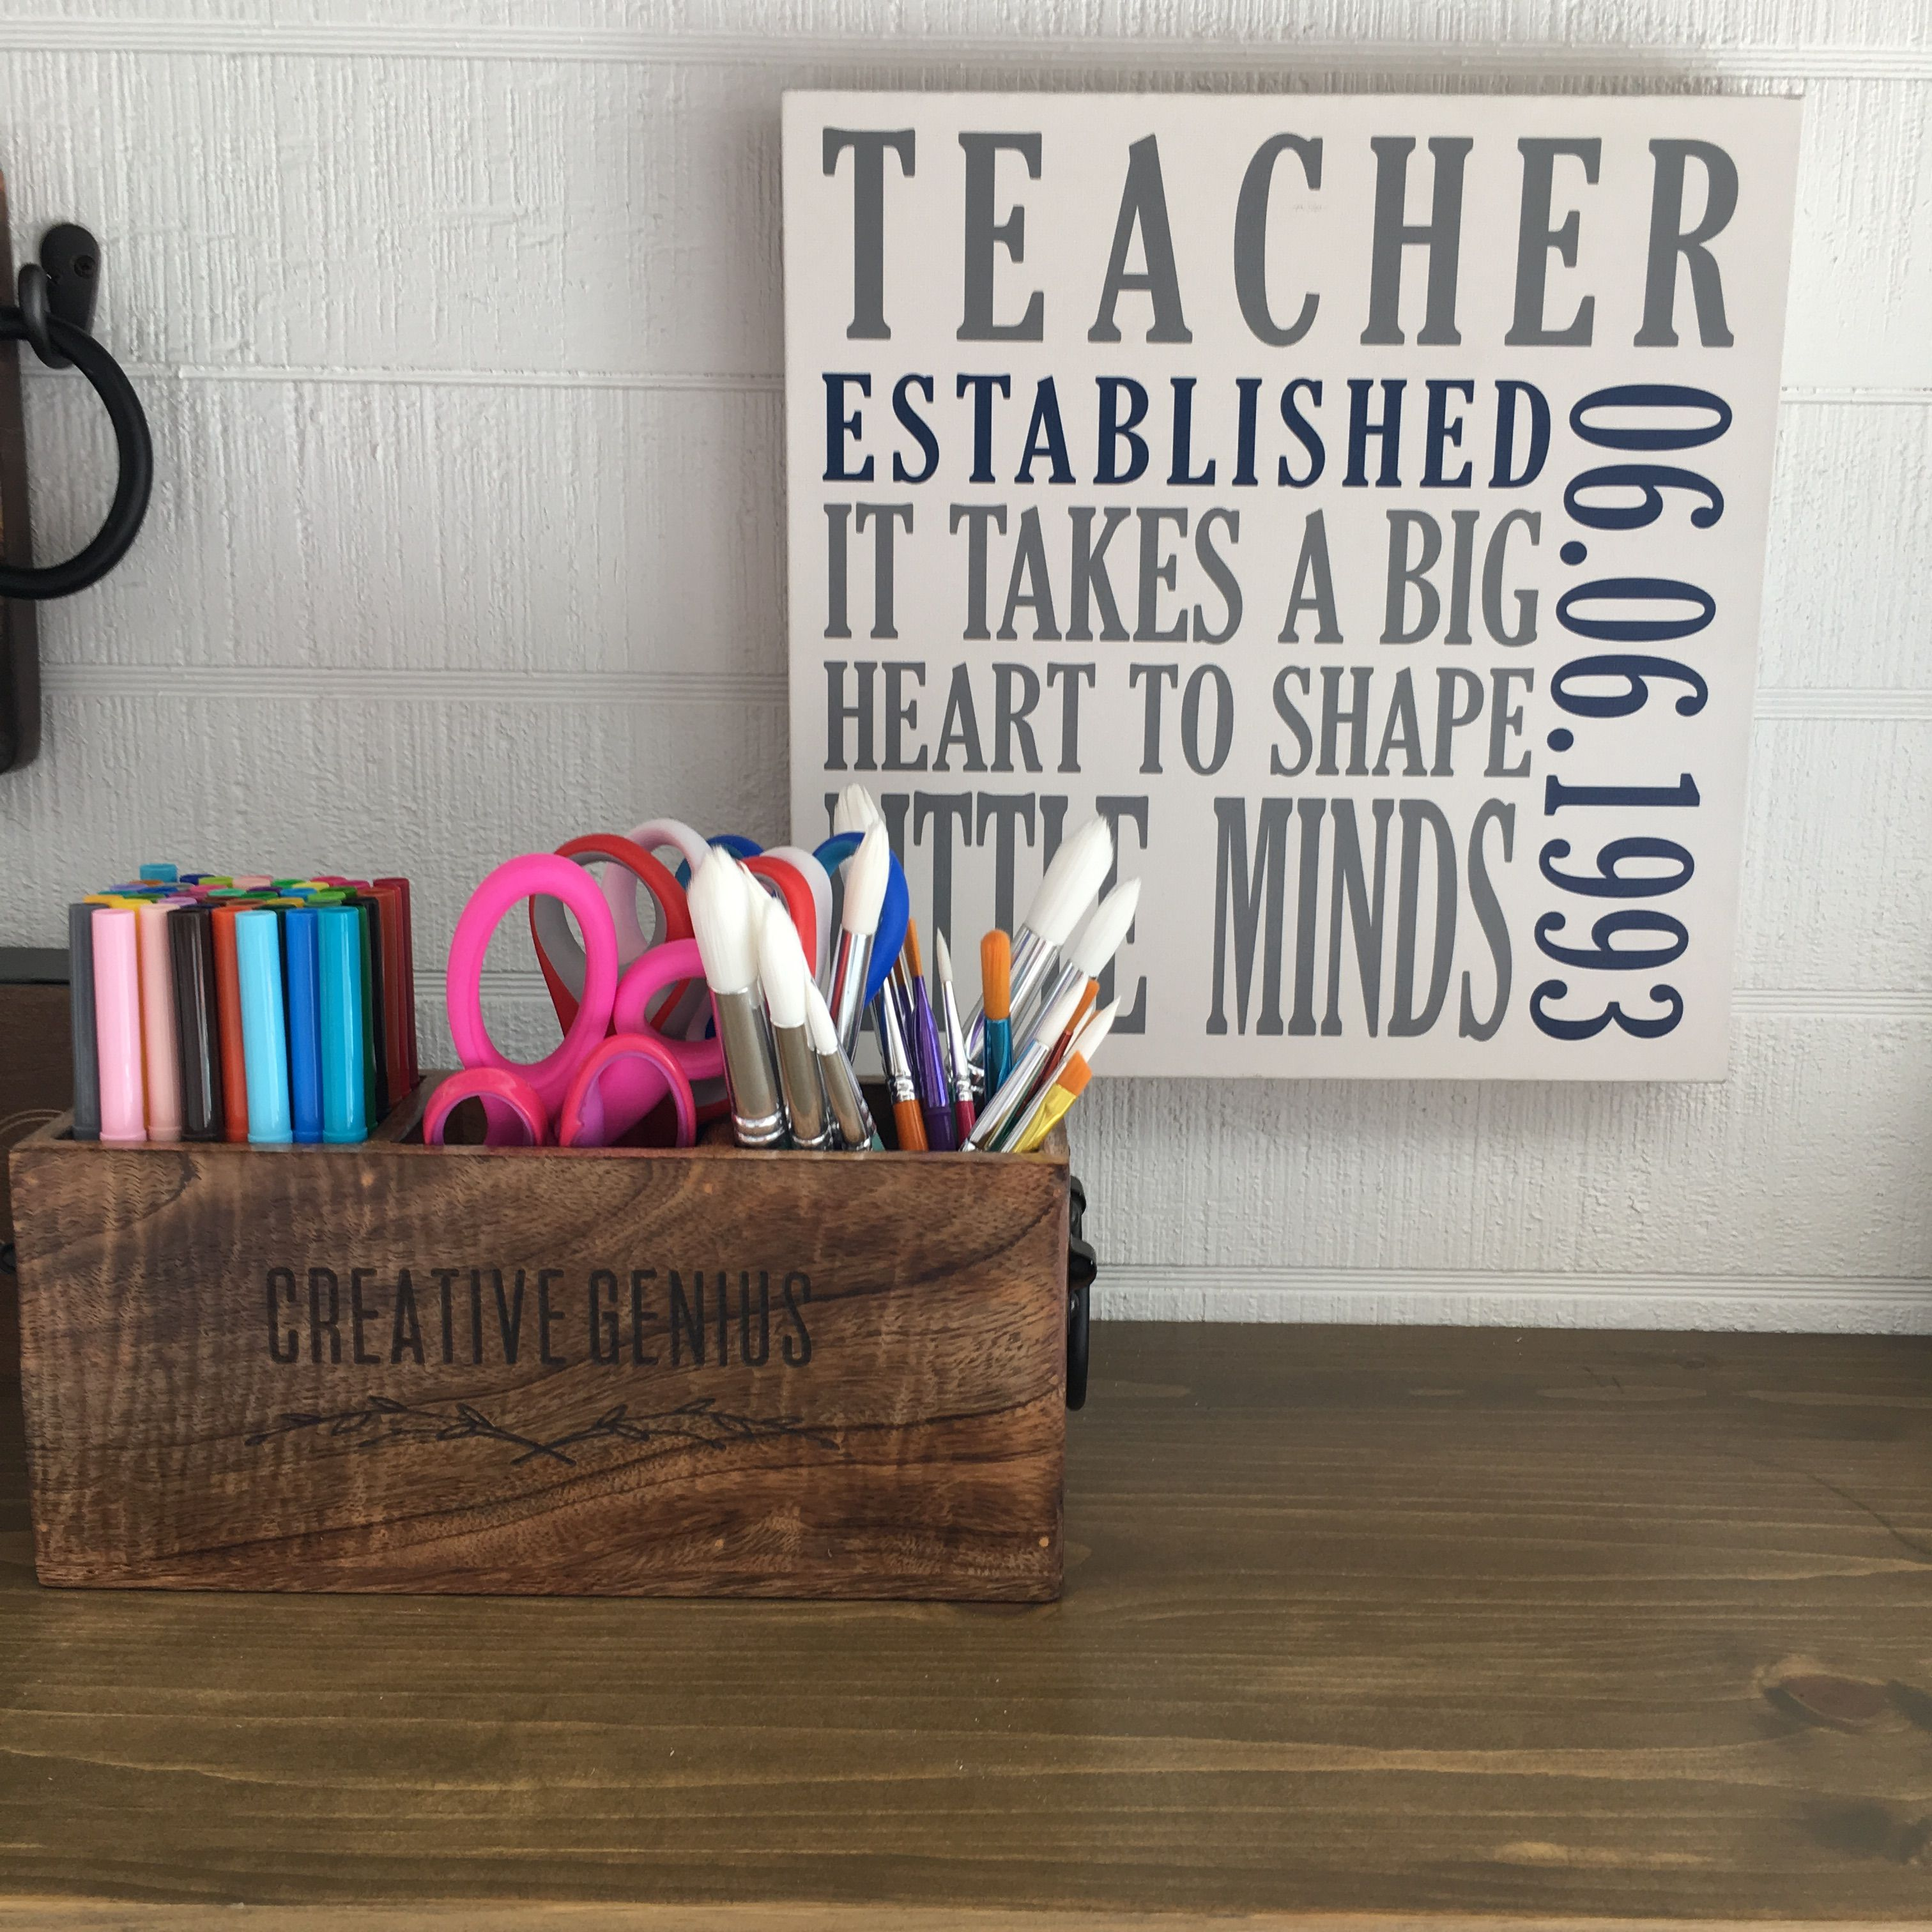 Close to home caddy by thirty one has you covered check out our personalized wall art too thirtyone www thebagdealer com